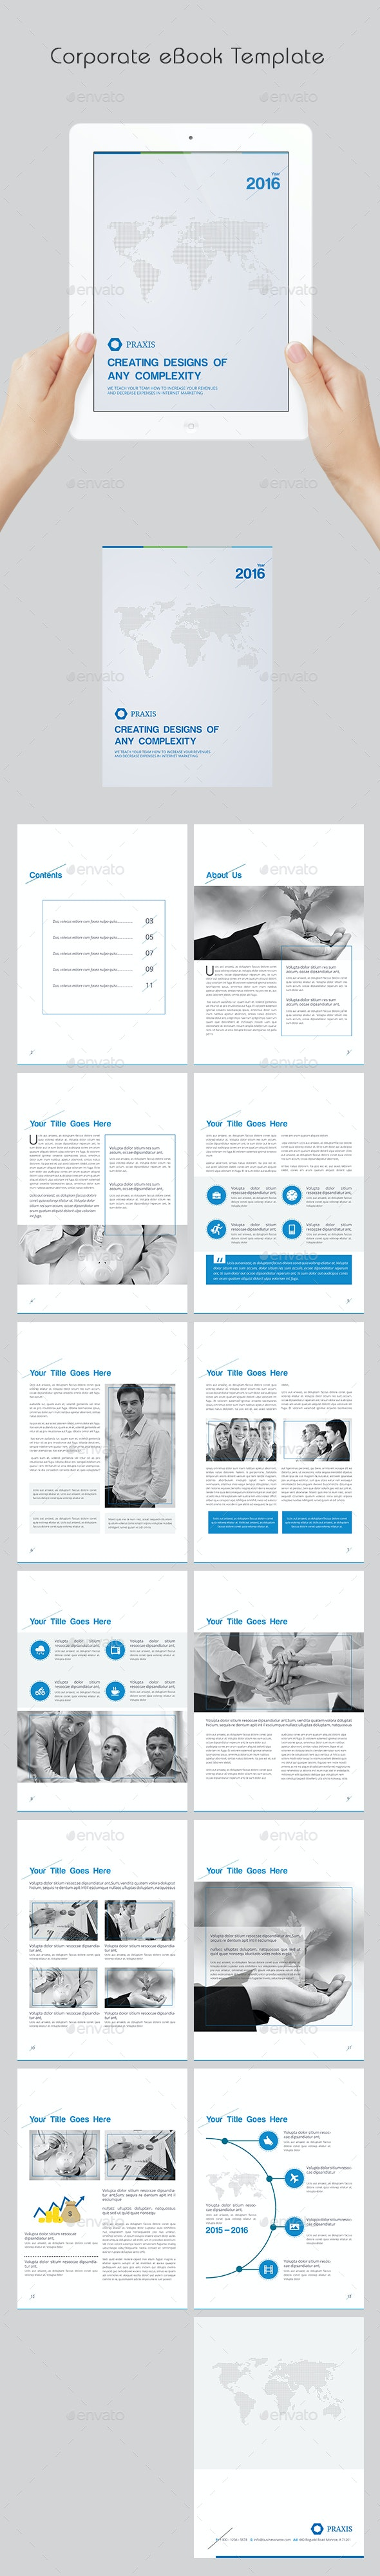 Corporate eBook Template - Digital Books ePublishing